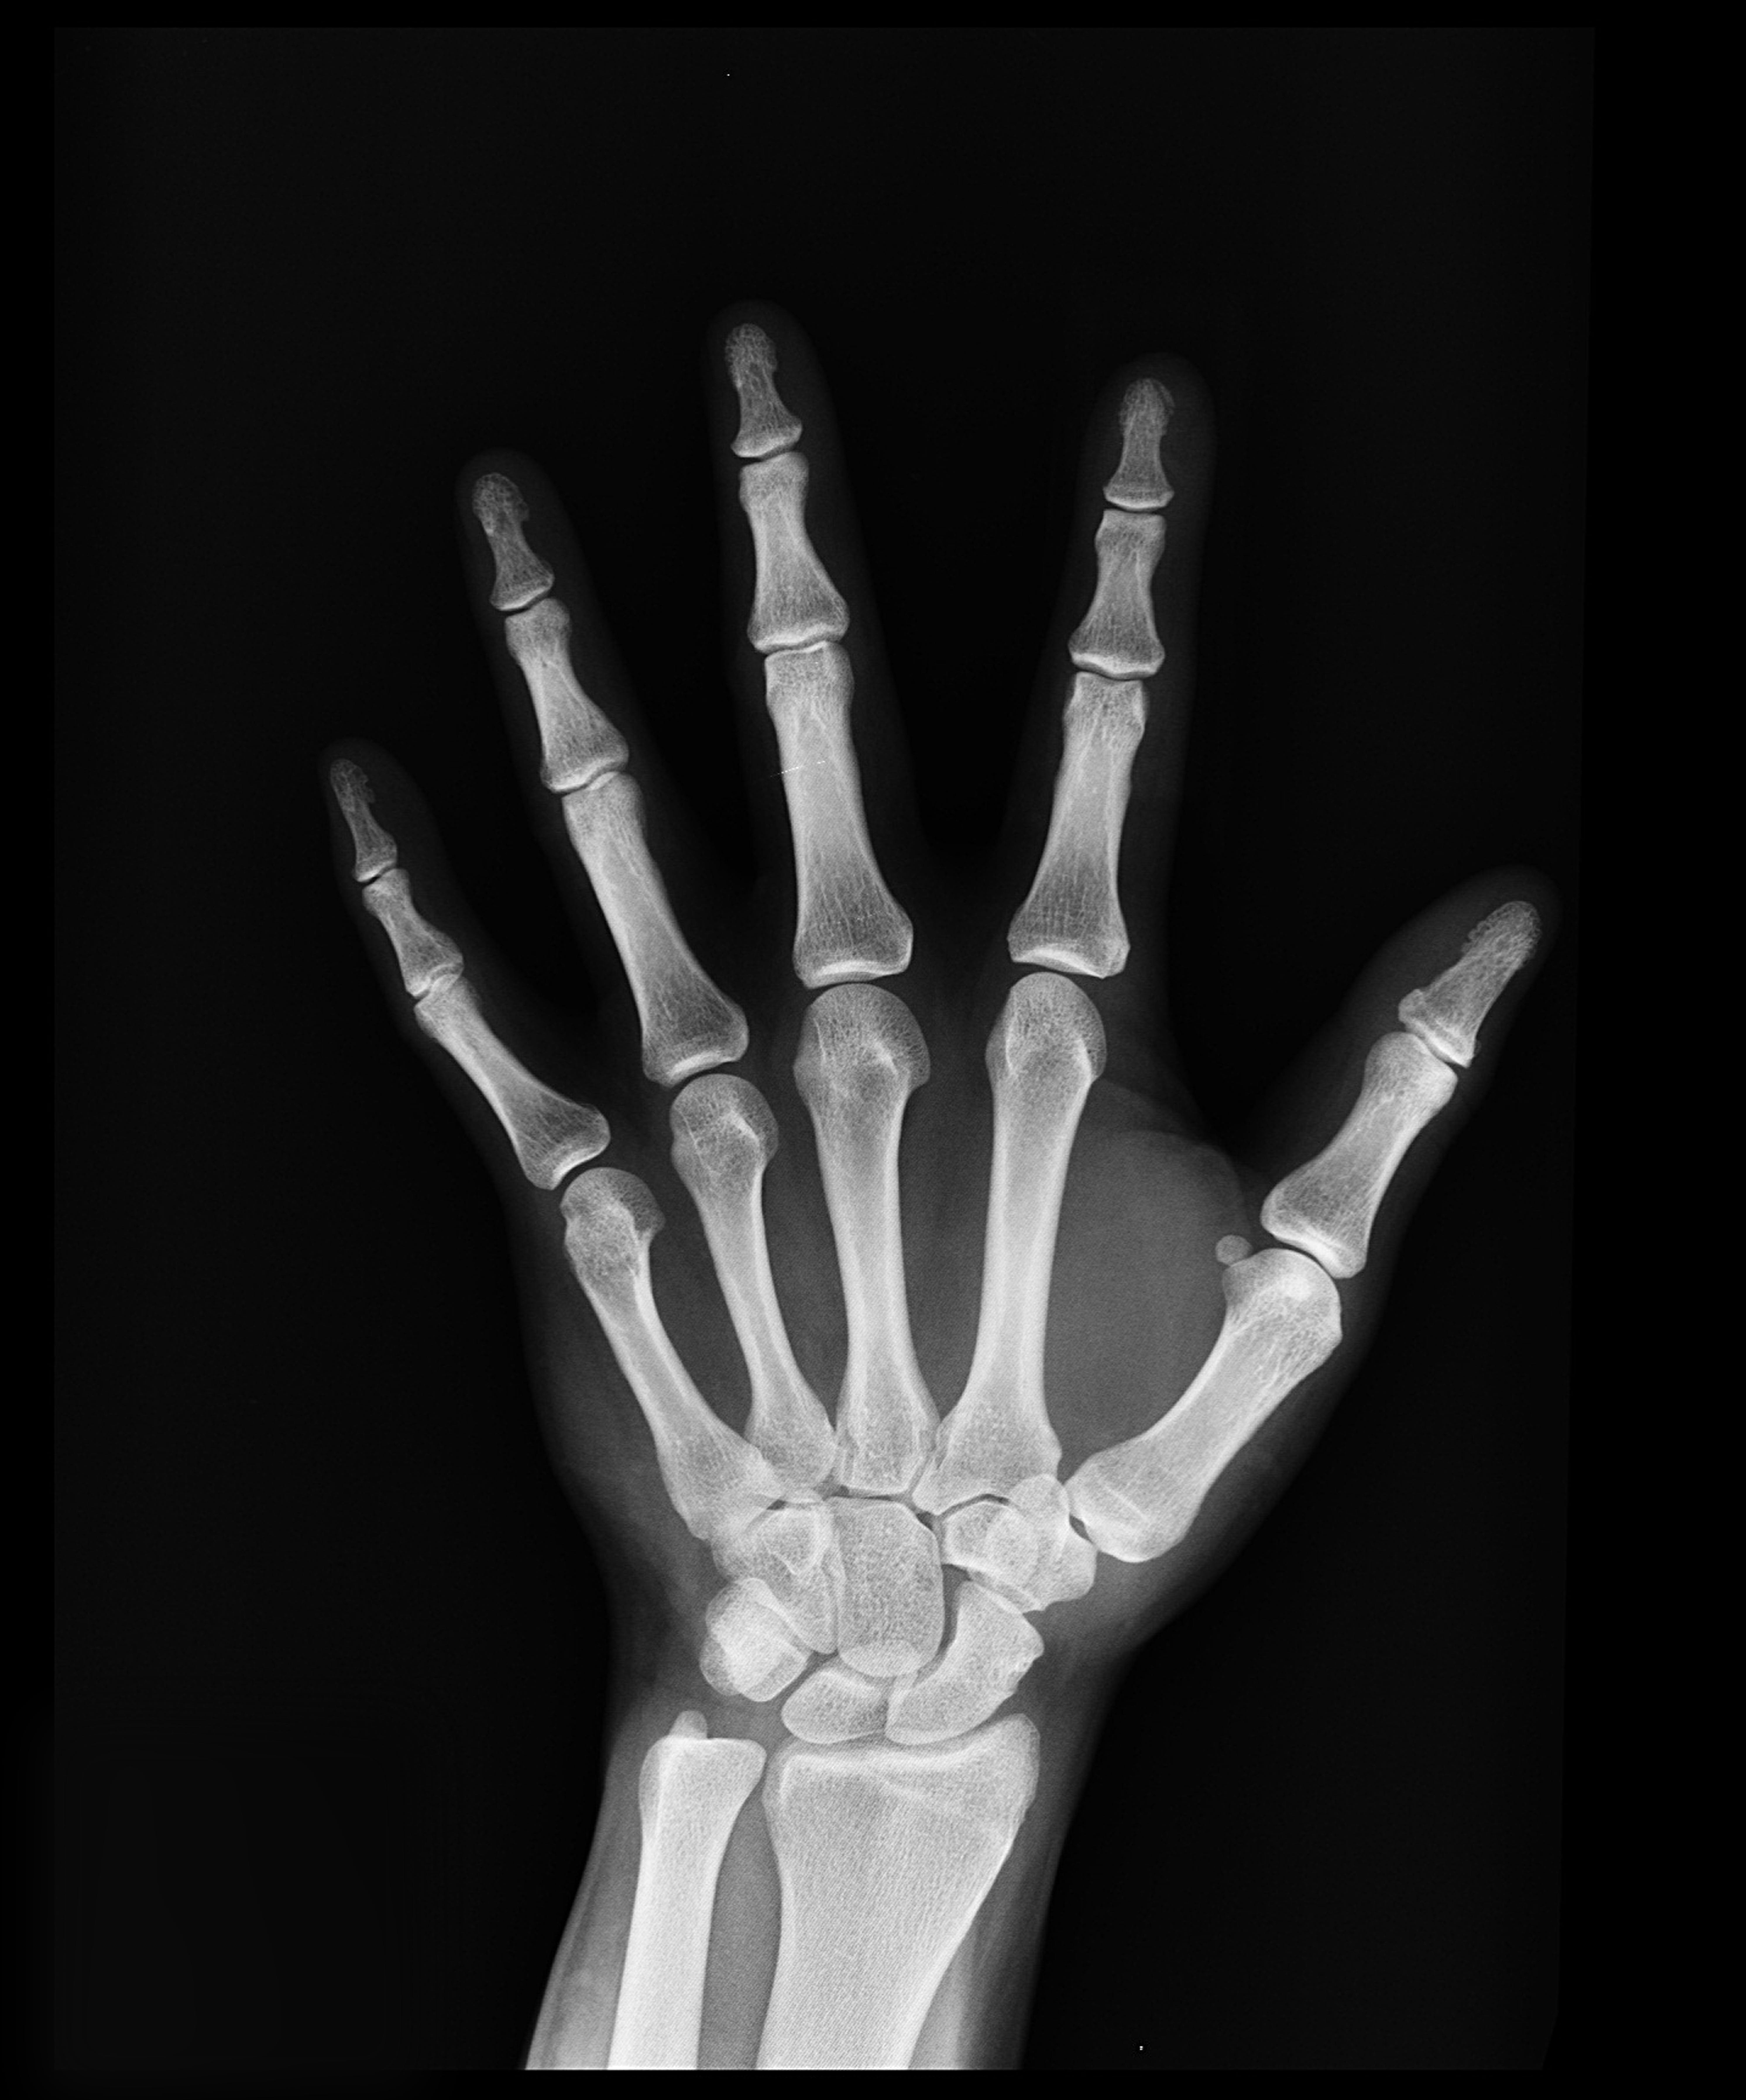 Free stock photo of black-and-white, hand, bones, x-ray